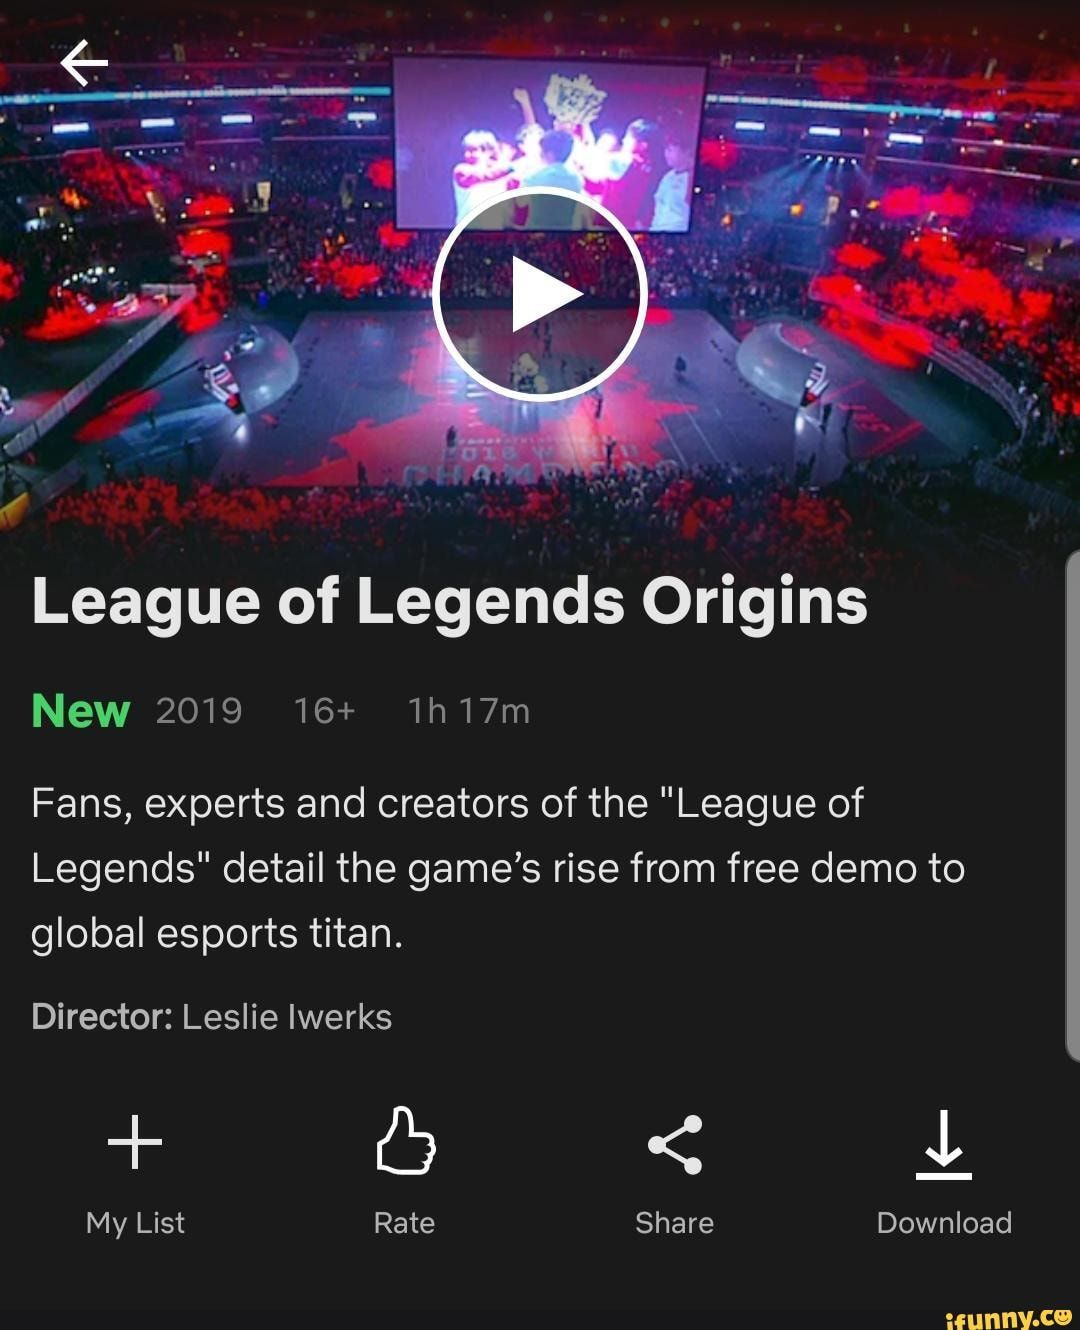 League Of Legends Origins New 2019 16 Lh17m Fans Experts And Creators Of The League Of Legends Detail The Game S Rise From Free Demo To Global Esports Tita League Of Legends